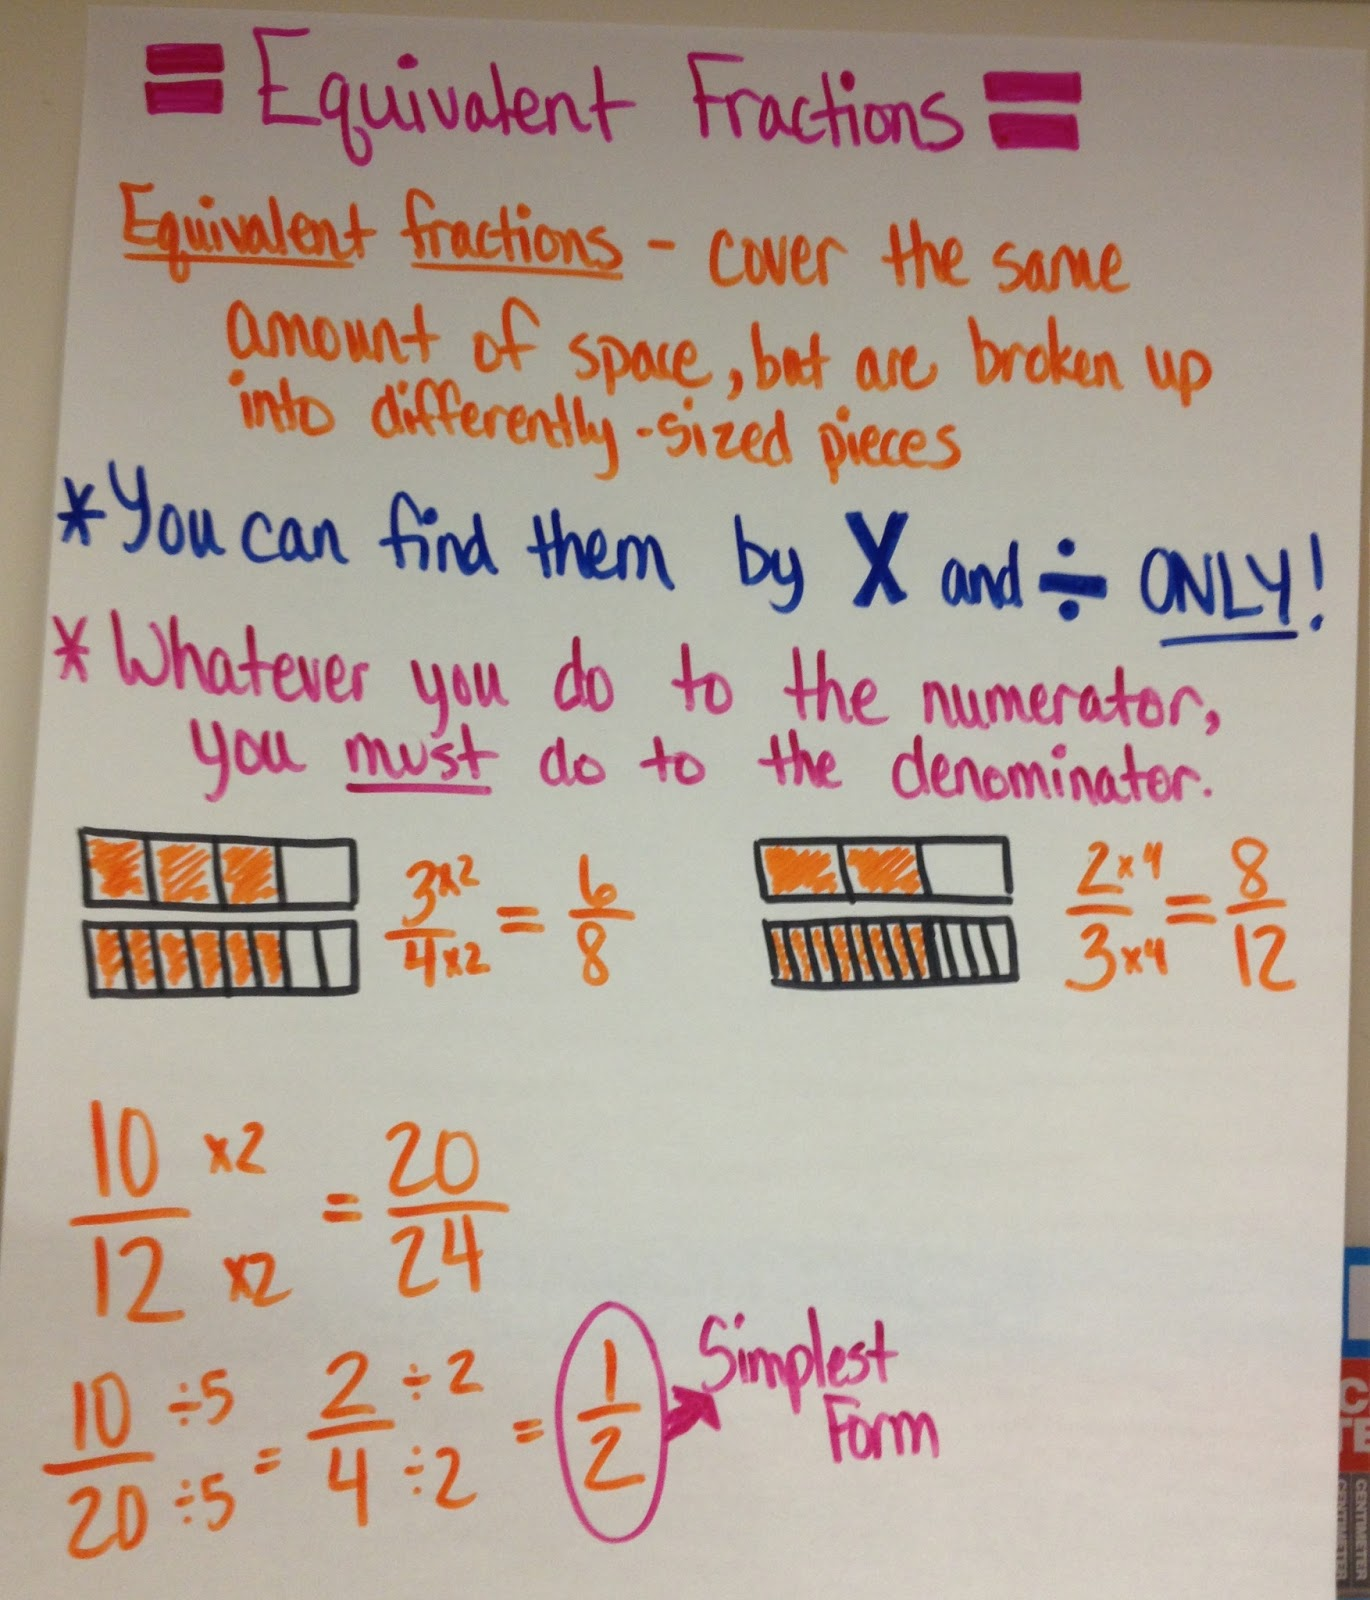 the 4th grade may-niacs: equivalent fractions